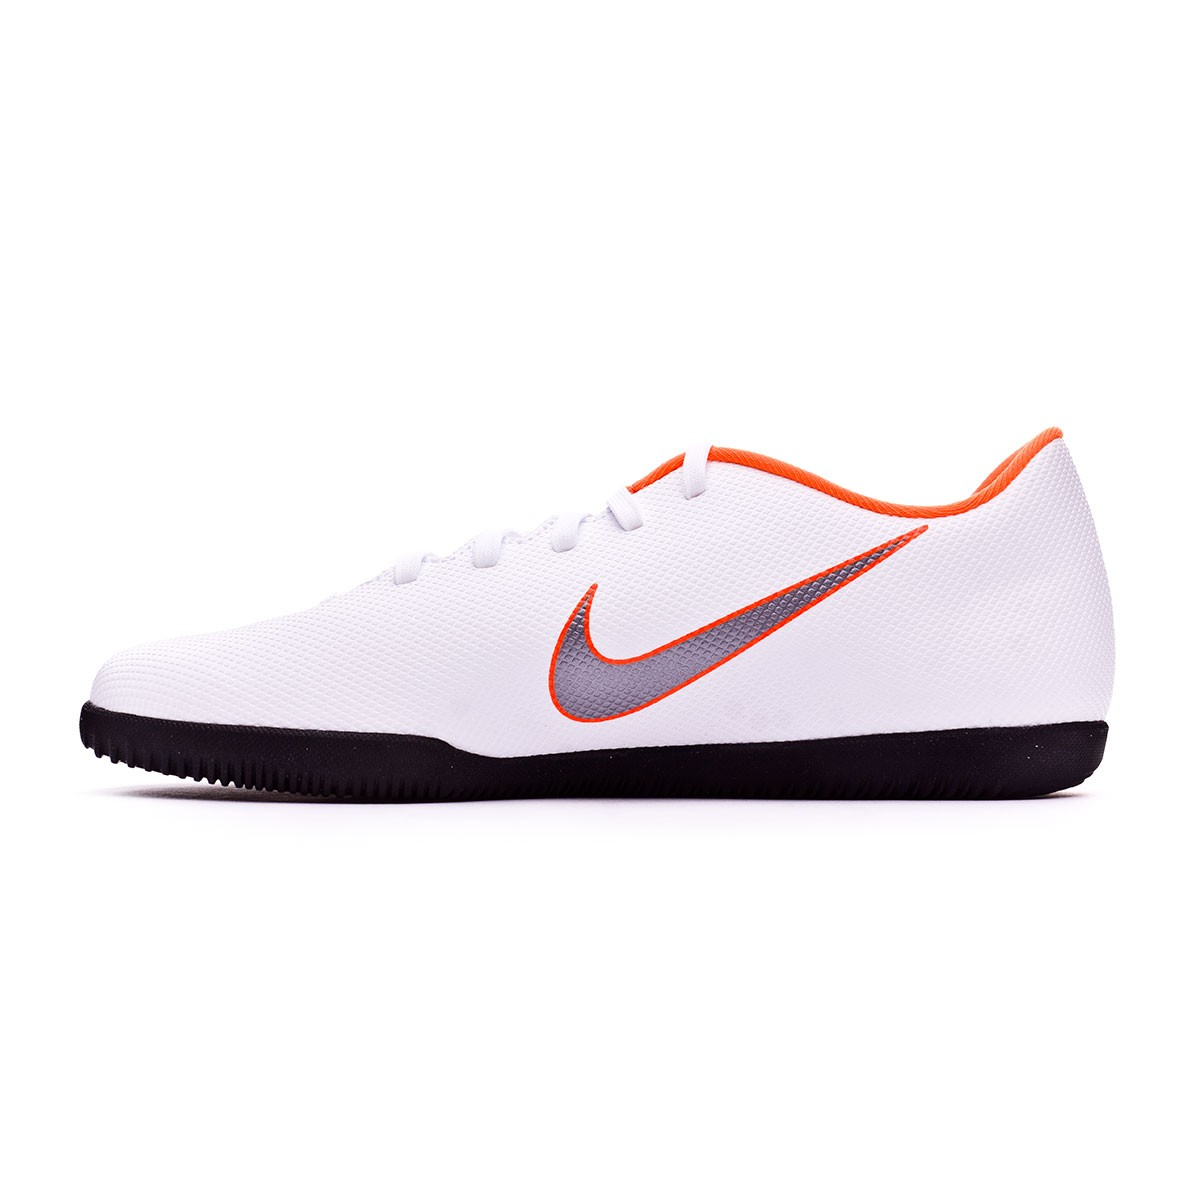 finest selection 60509 323a6 Futsal Boot Nike Mercurial VaporX XII Club IC White-Metallic cool  grey-Total orange - Tienda de fútbol Fútbol Emotion